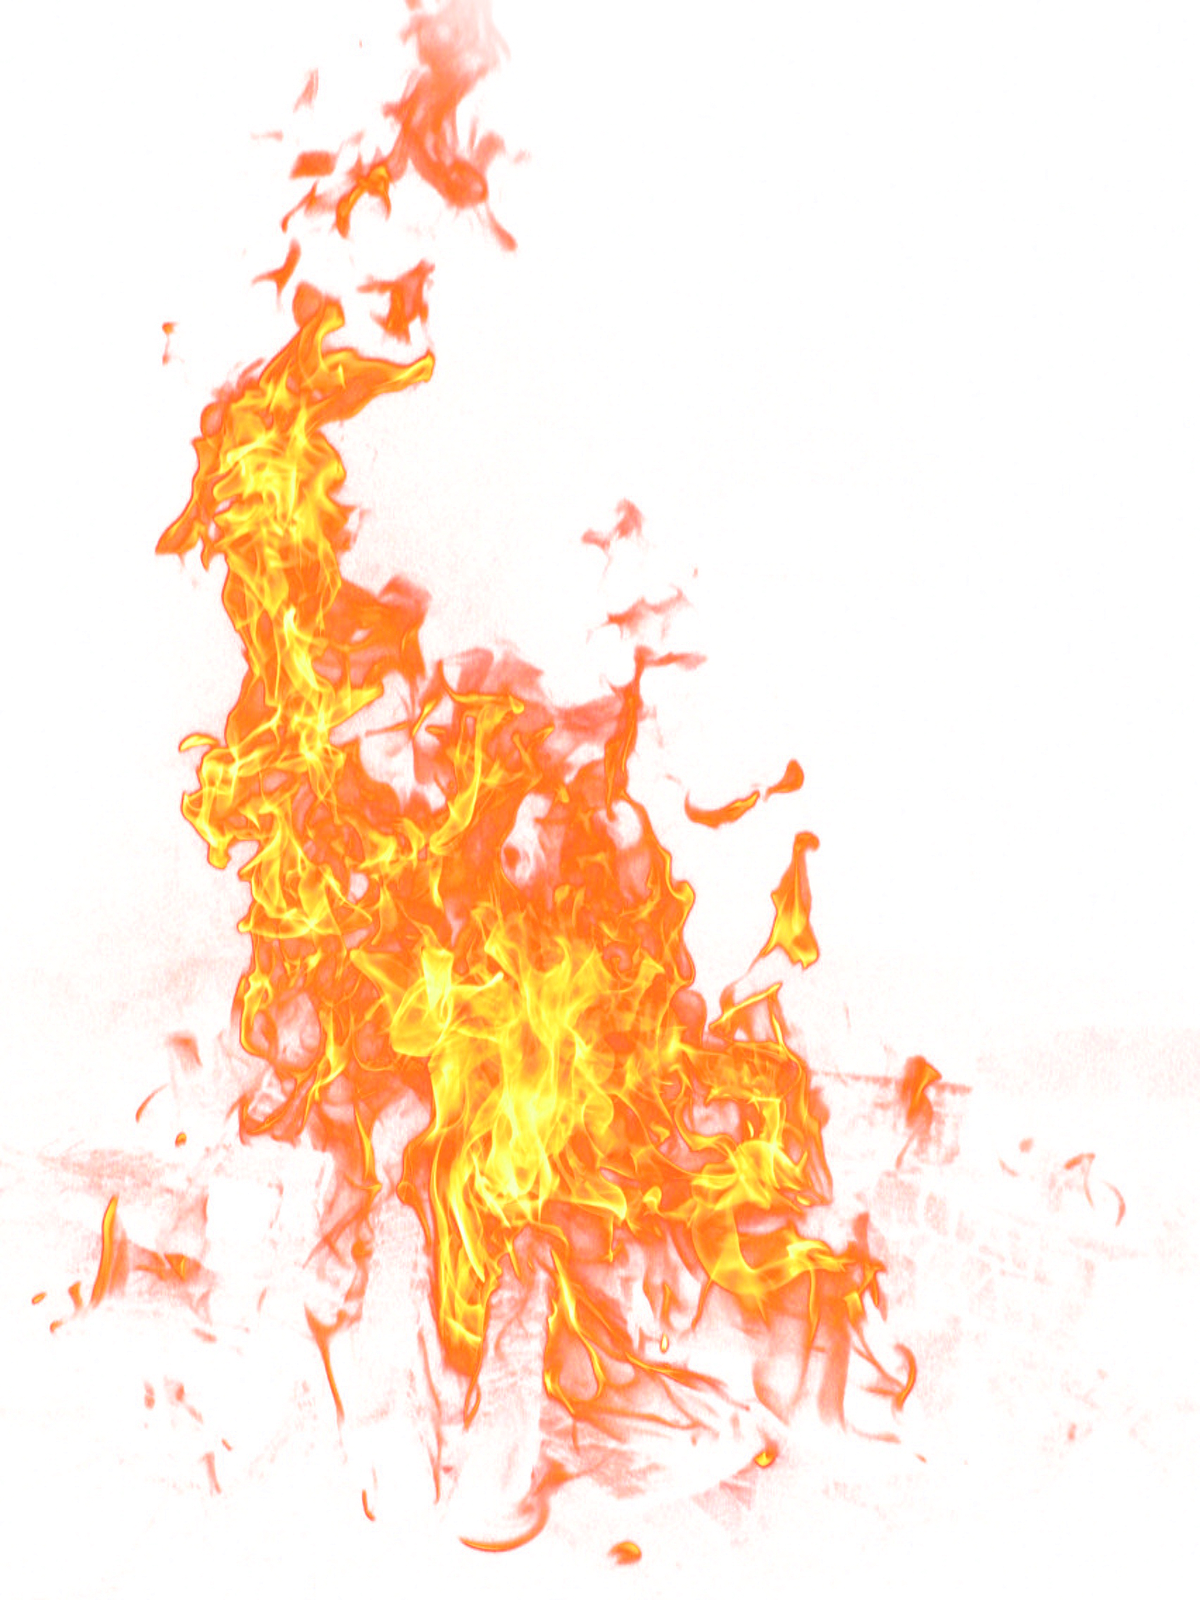 Fire Transparent PNG Image Fire Transparent PNG Image image #679 - Fire PNG